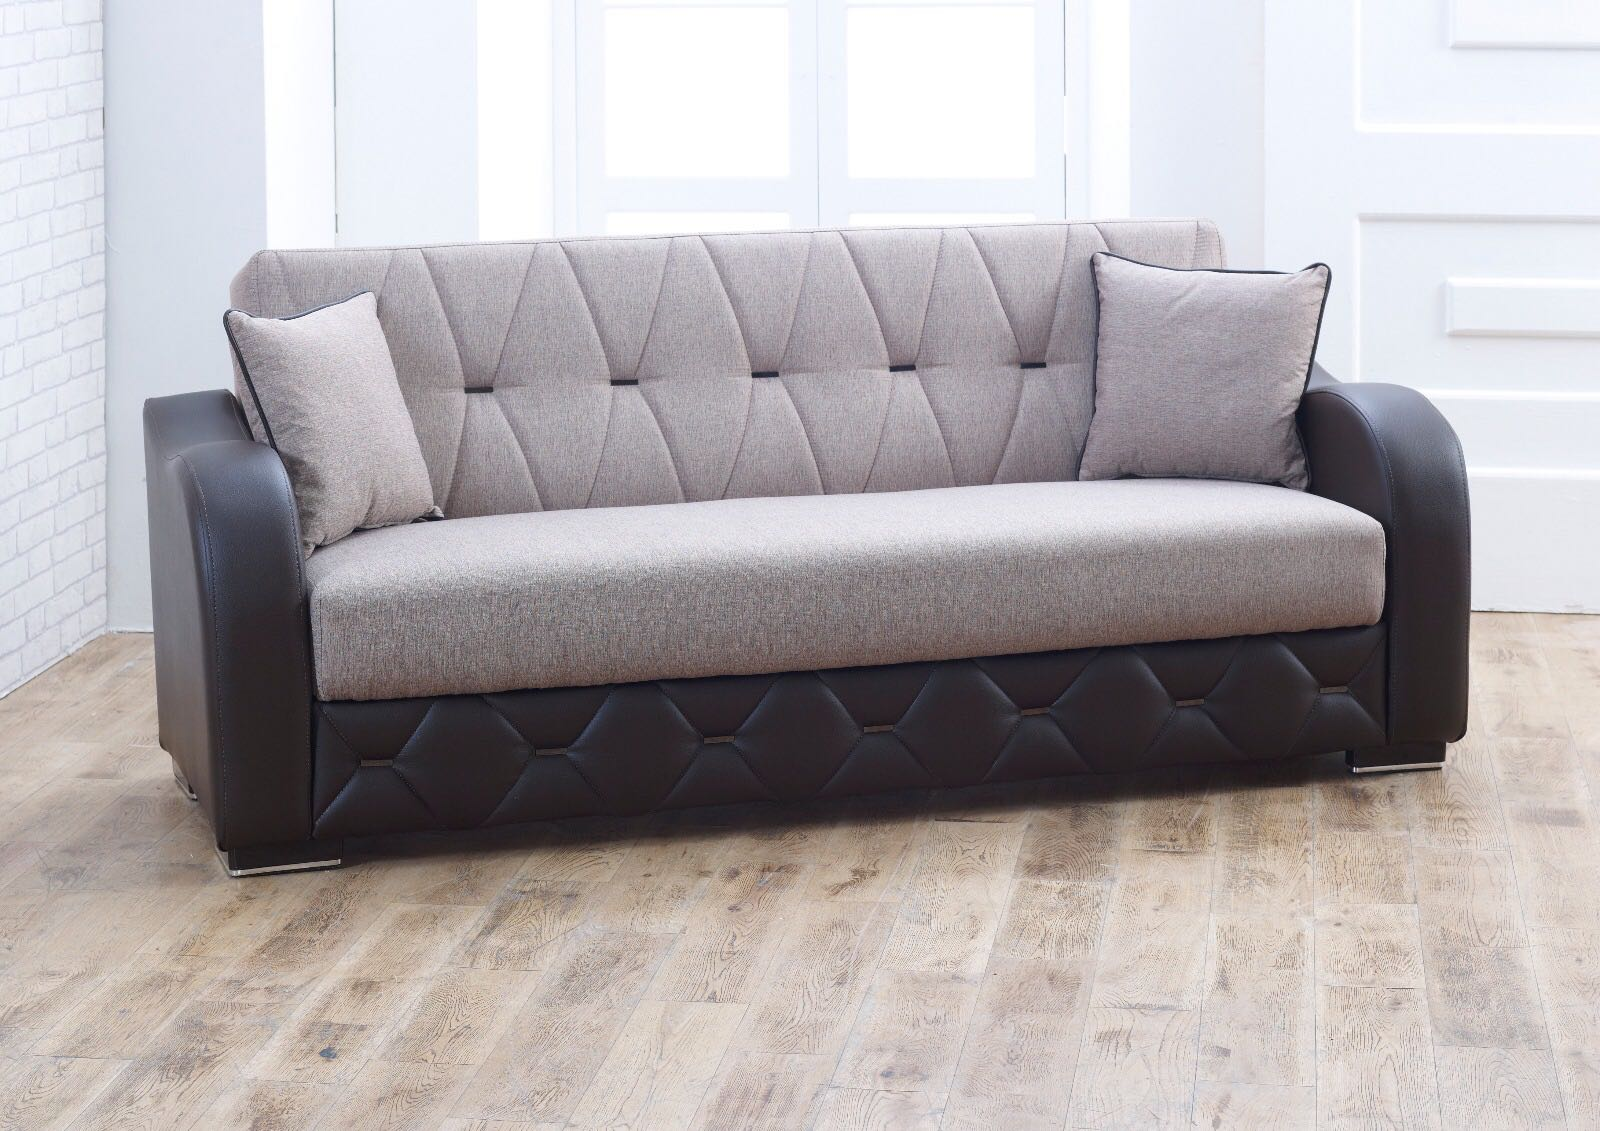 Bed settees @fairdealbeds